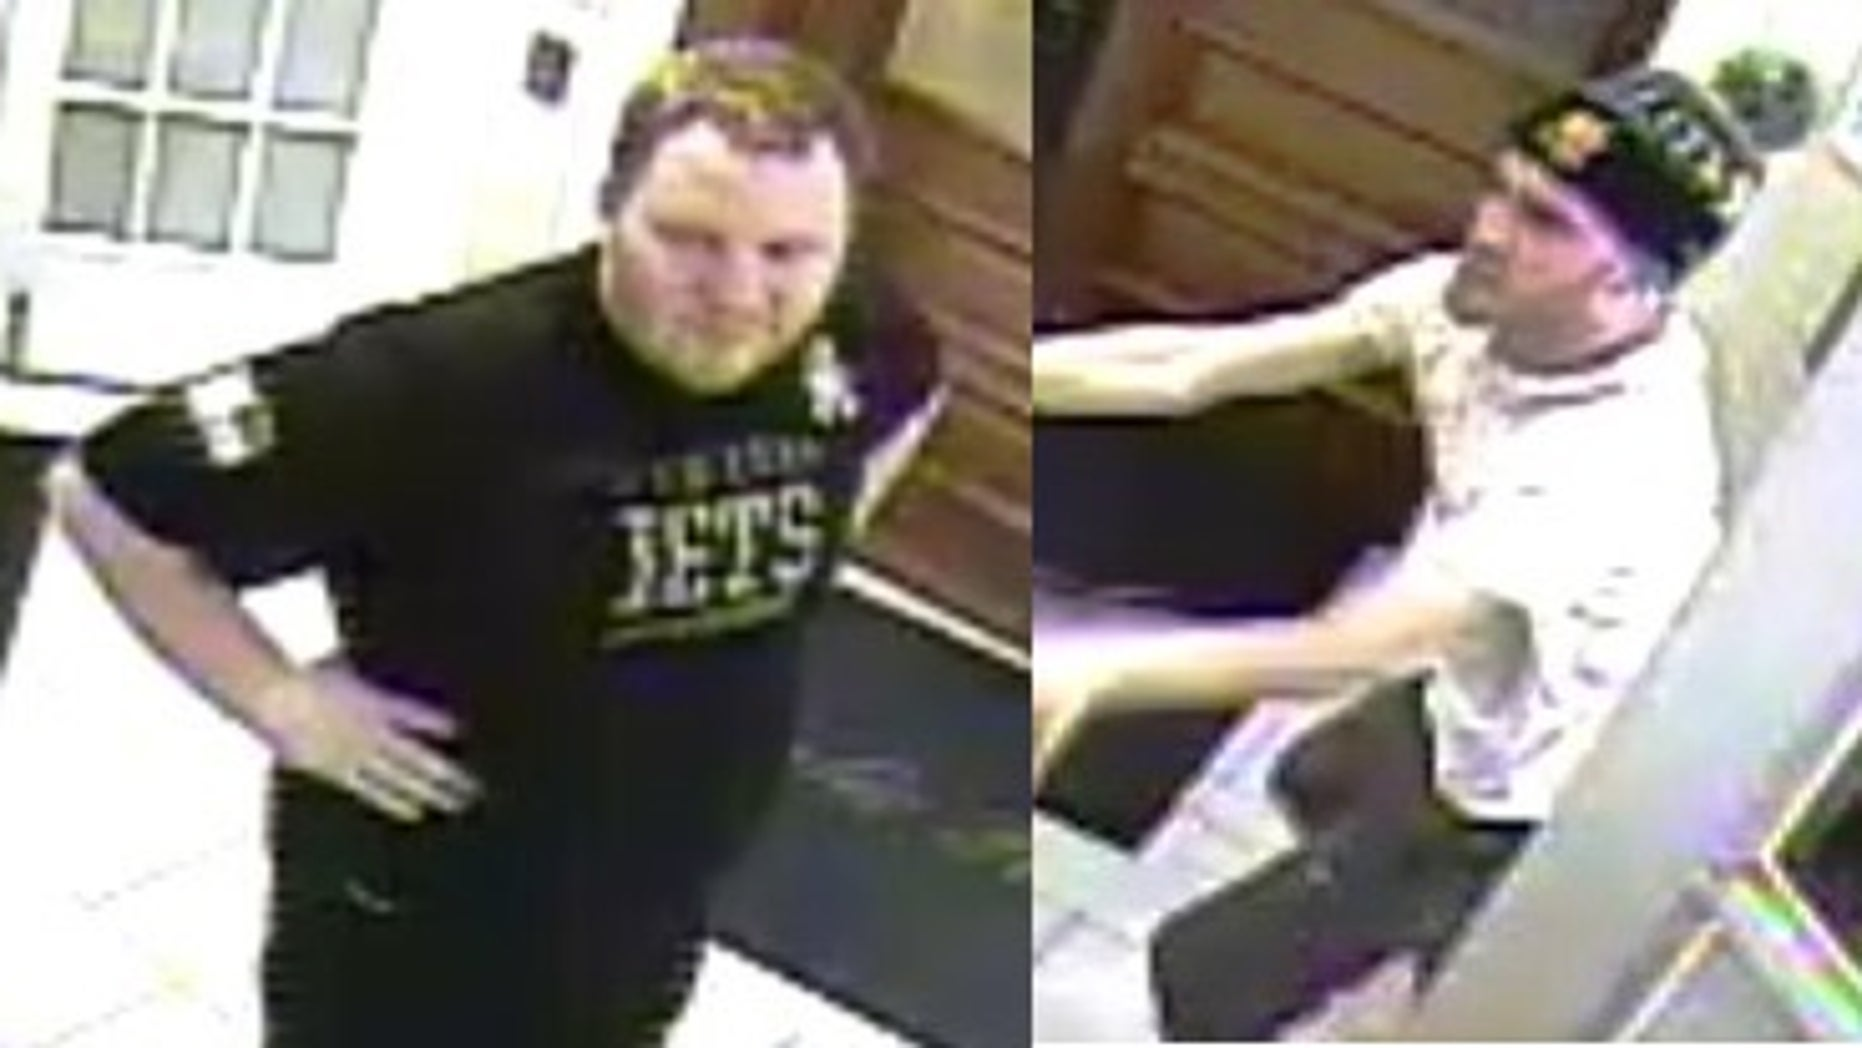 Police released images of two suspects in an attack inside a Long Island gated community.